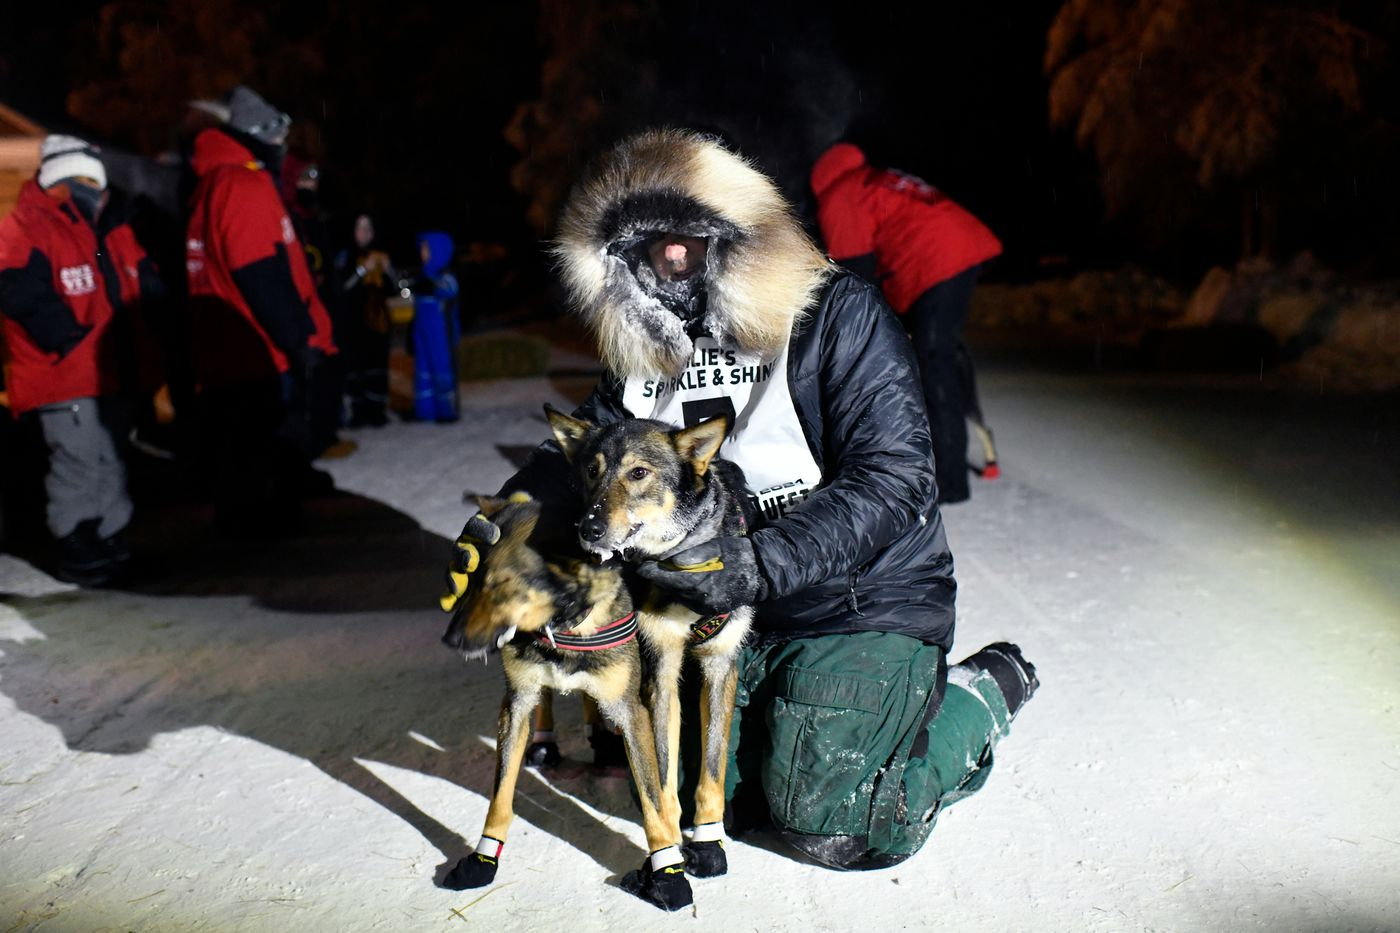 Summit Quest 300 winner Dan Kaduce poses with his lead dogs, Phoenix and Titan, in Central on February 15, 2021. (Marc Lester / ADN)